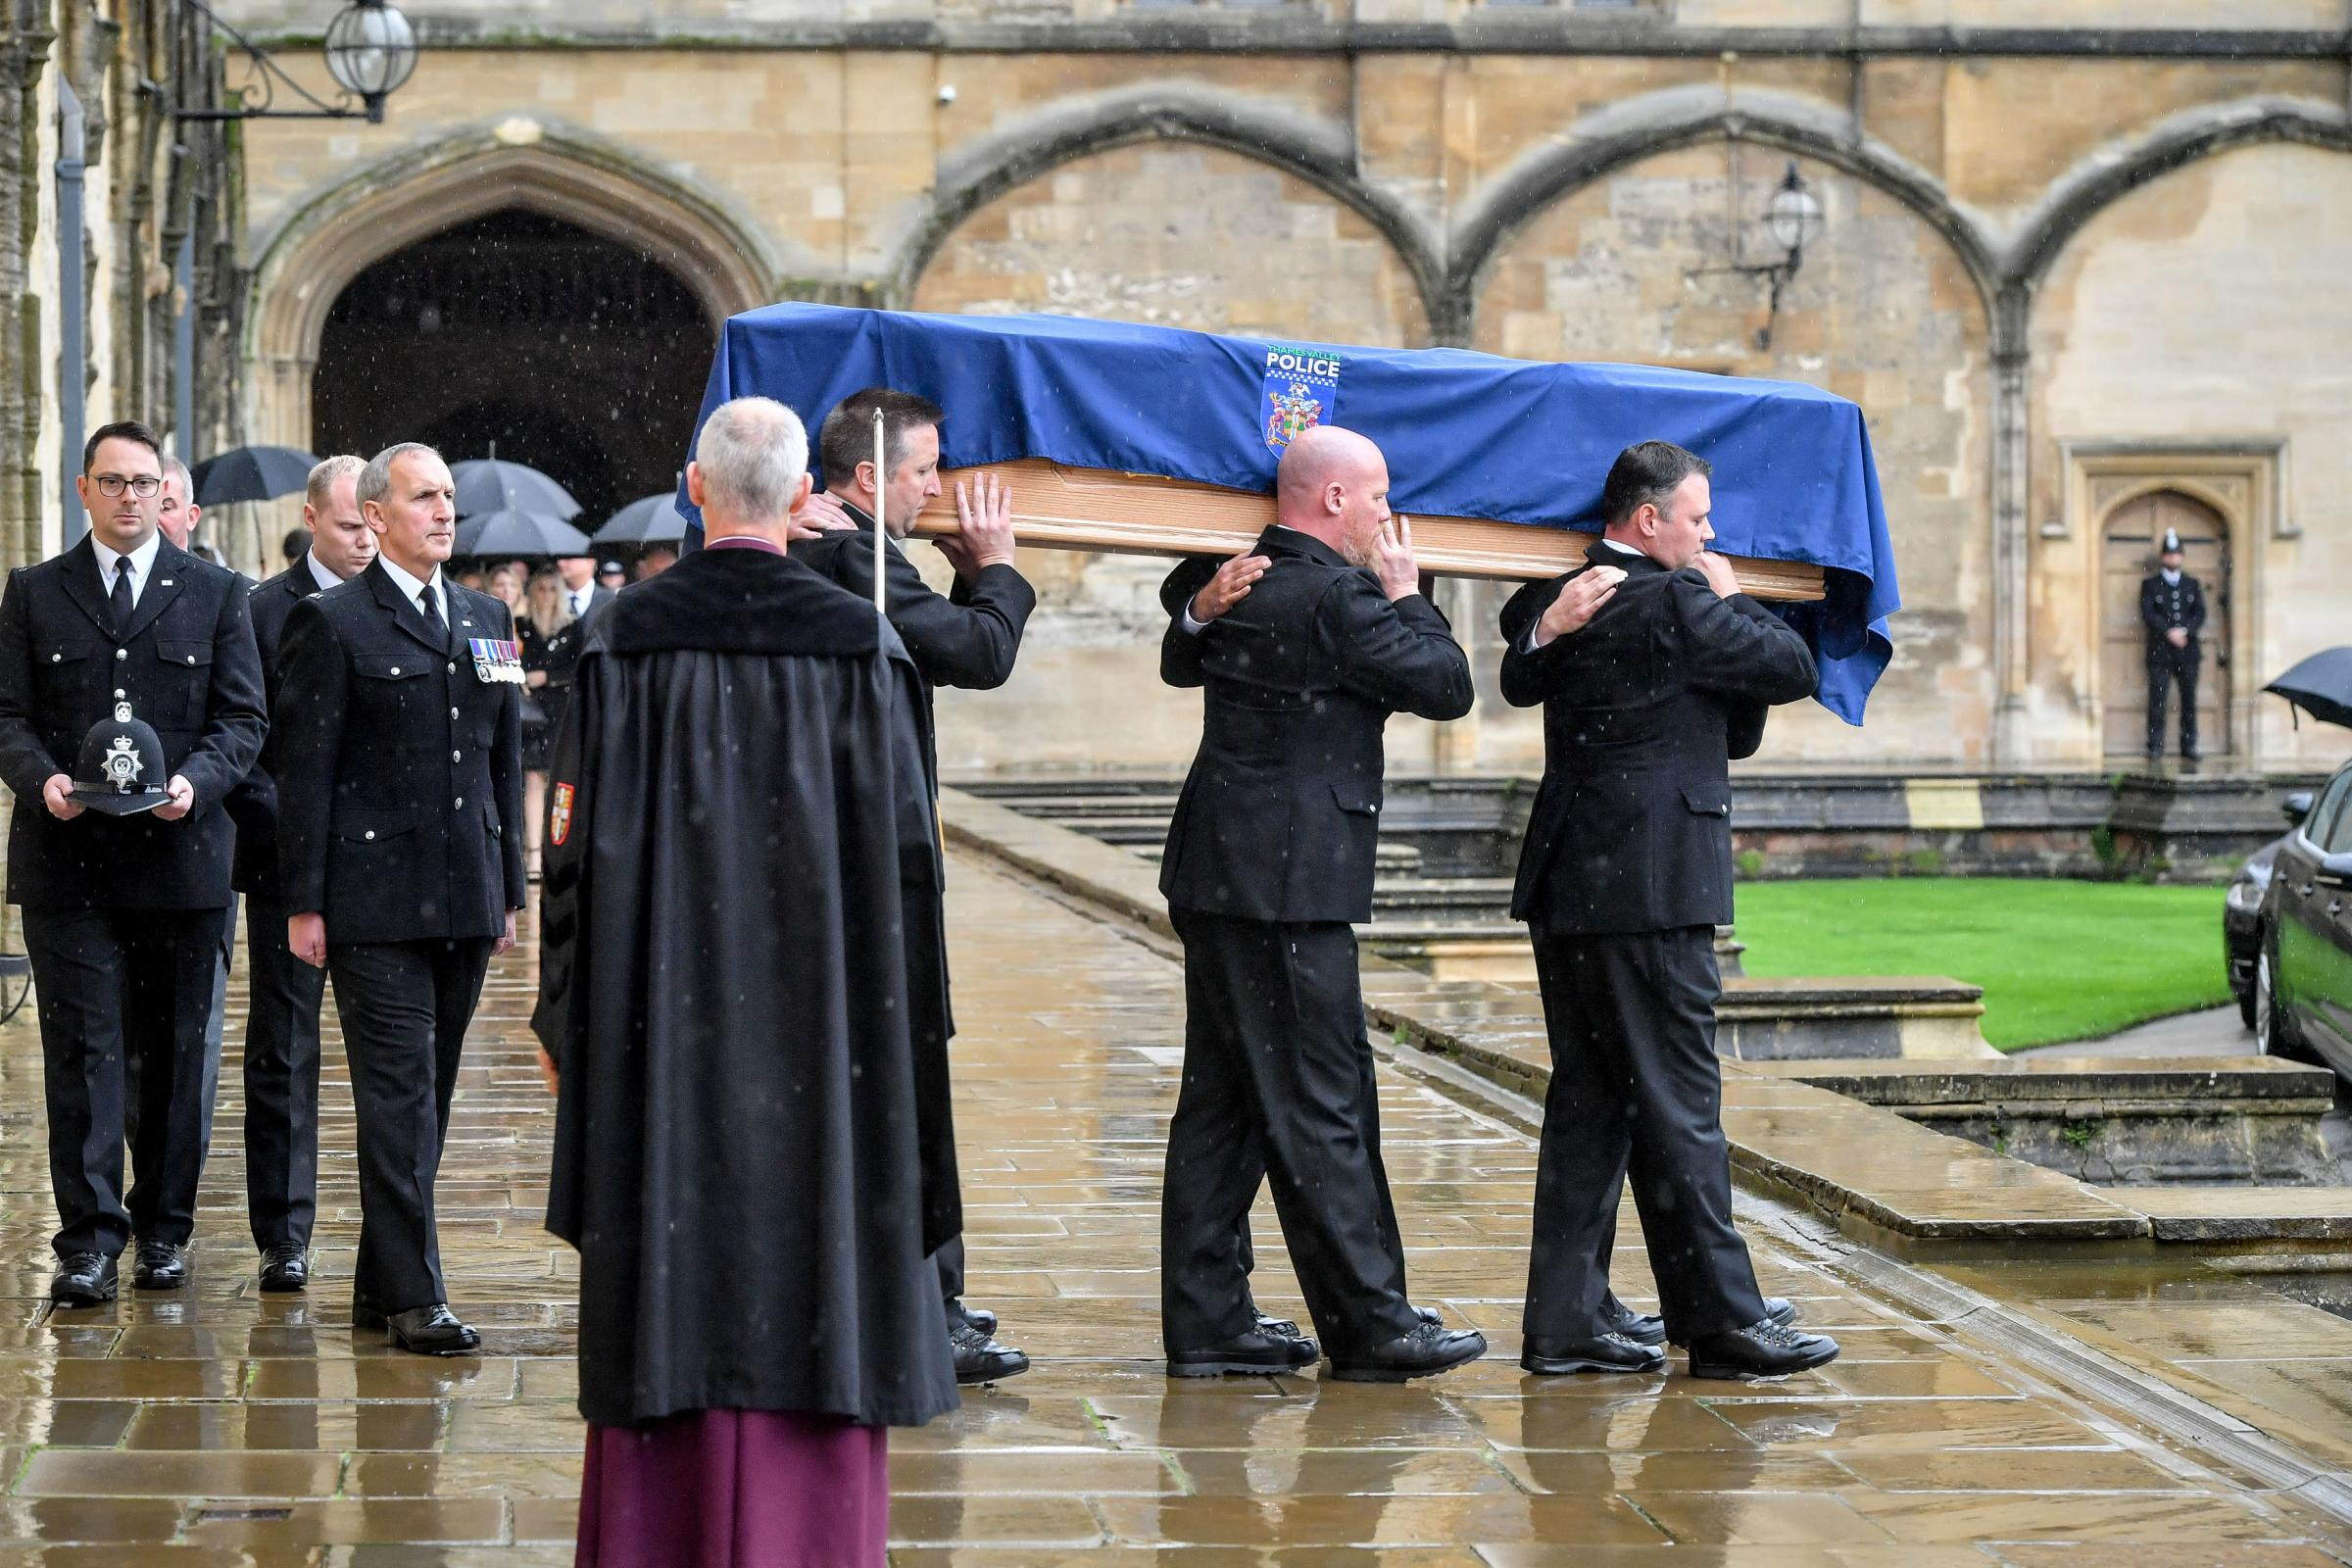 The funeral of PC Andrew Harper